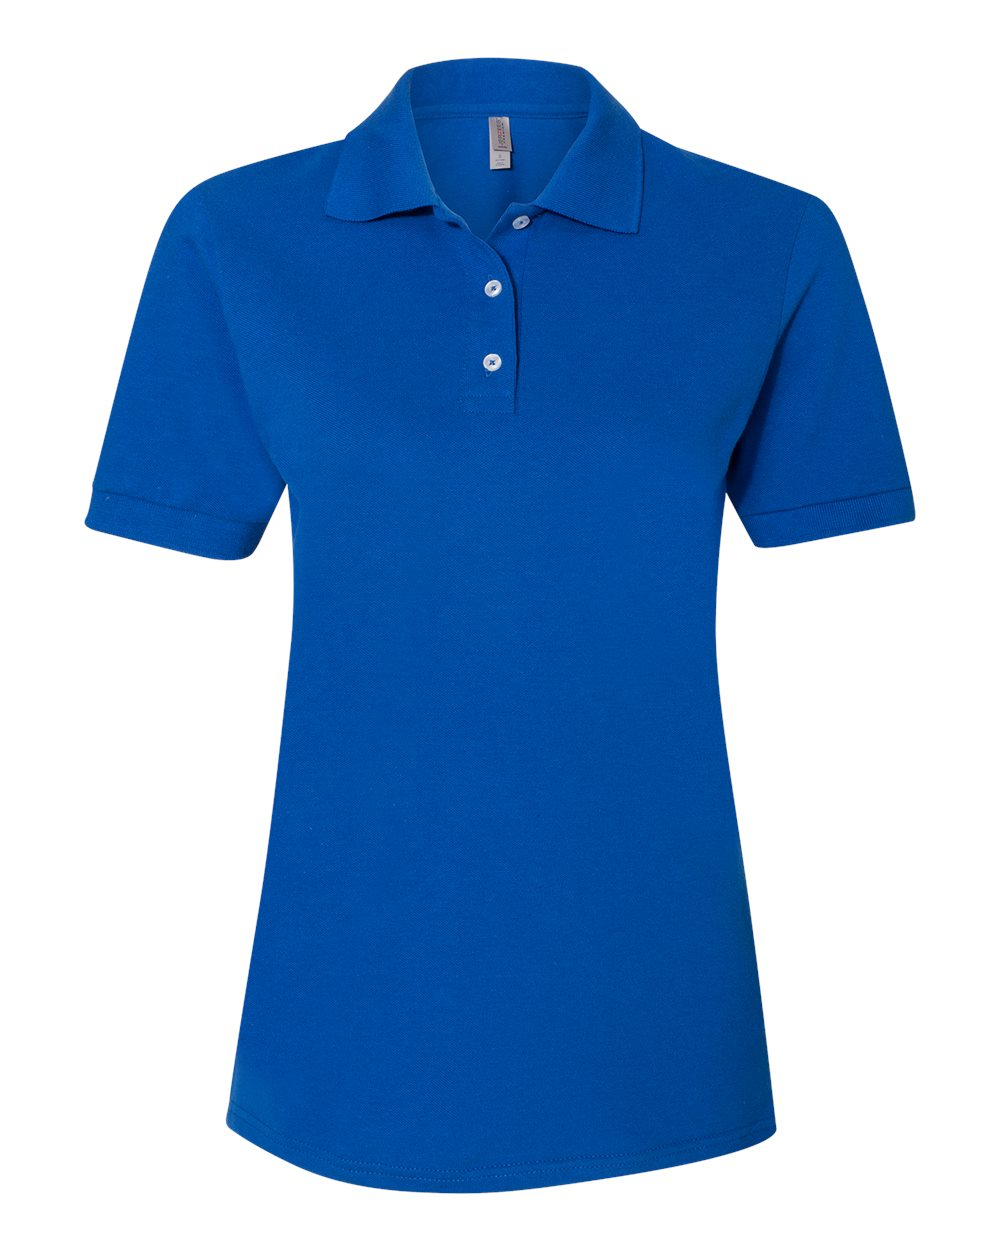 Jerzees-Women-039-s-Easy-Care-Double-Mesh-Ringspun-Pique-Polo-Sport-Shirt-443W thumbnail 17